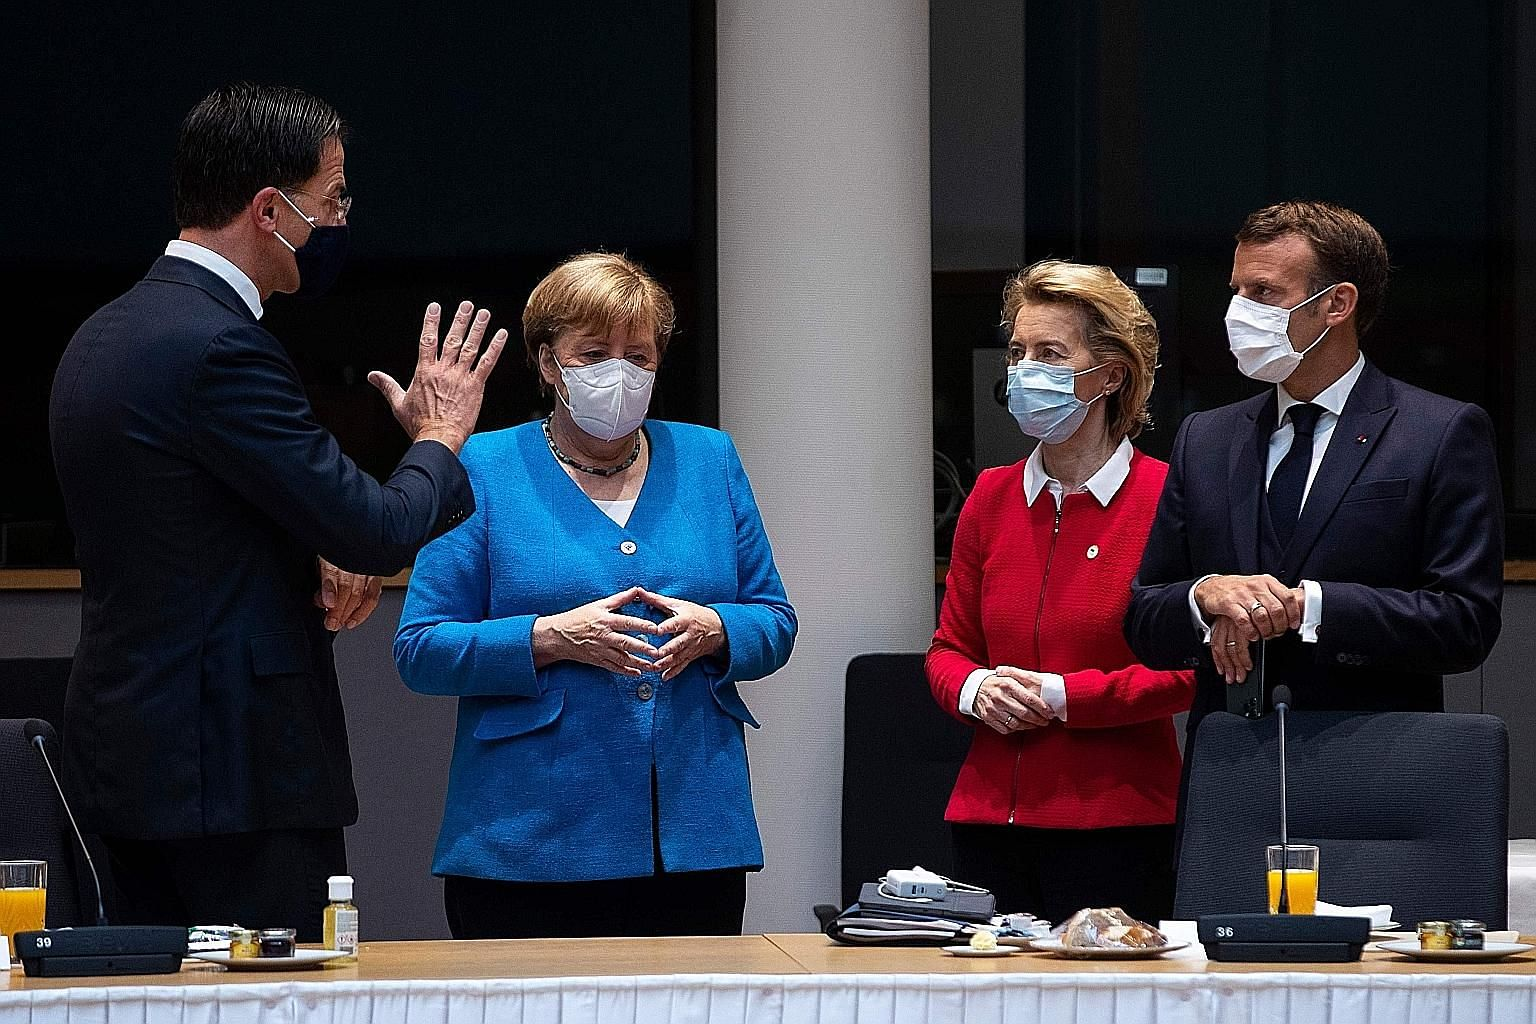 (From left) Dutch Prime Minister Mark Rutte, German Chancellor Angela Merkel, European Commission President Ursula von der Leyen and French President Emmanuel Macron meeting ahead of an EU summit at the European Council building in Brussels yesterday